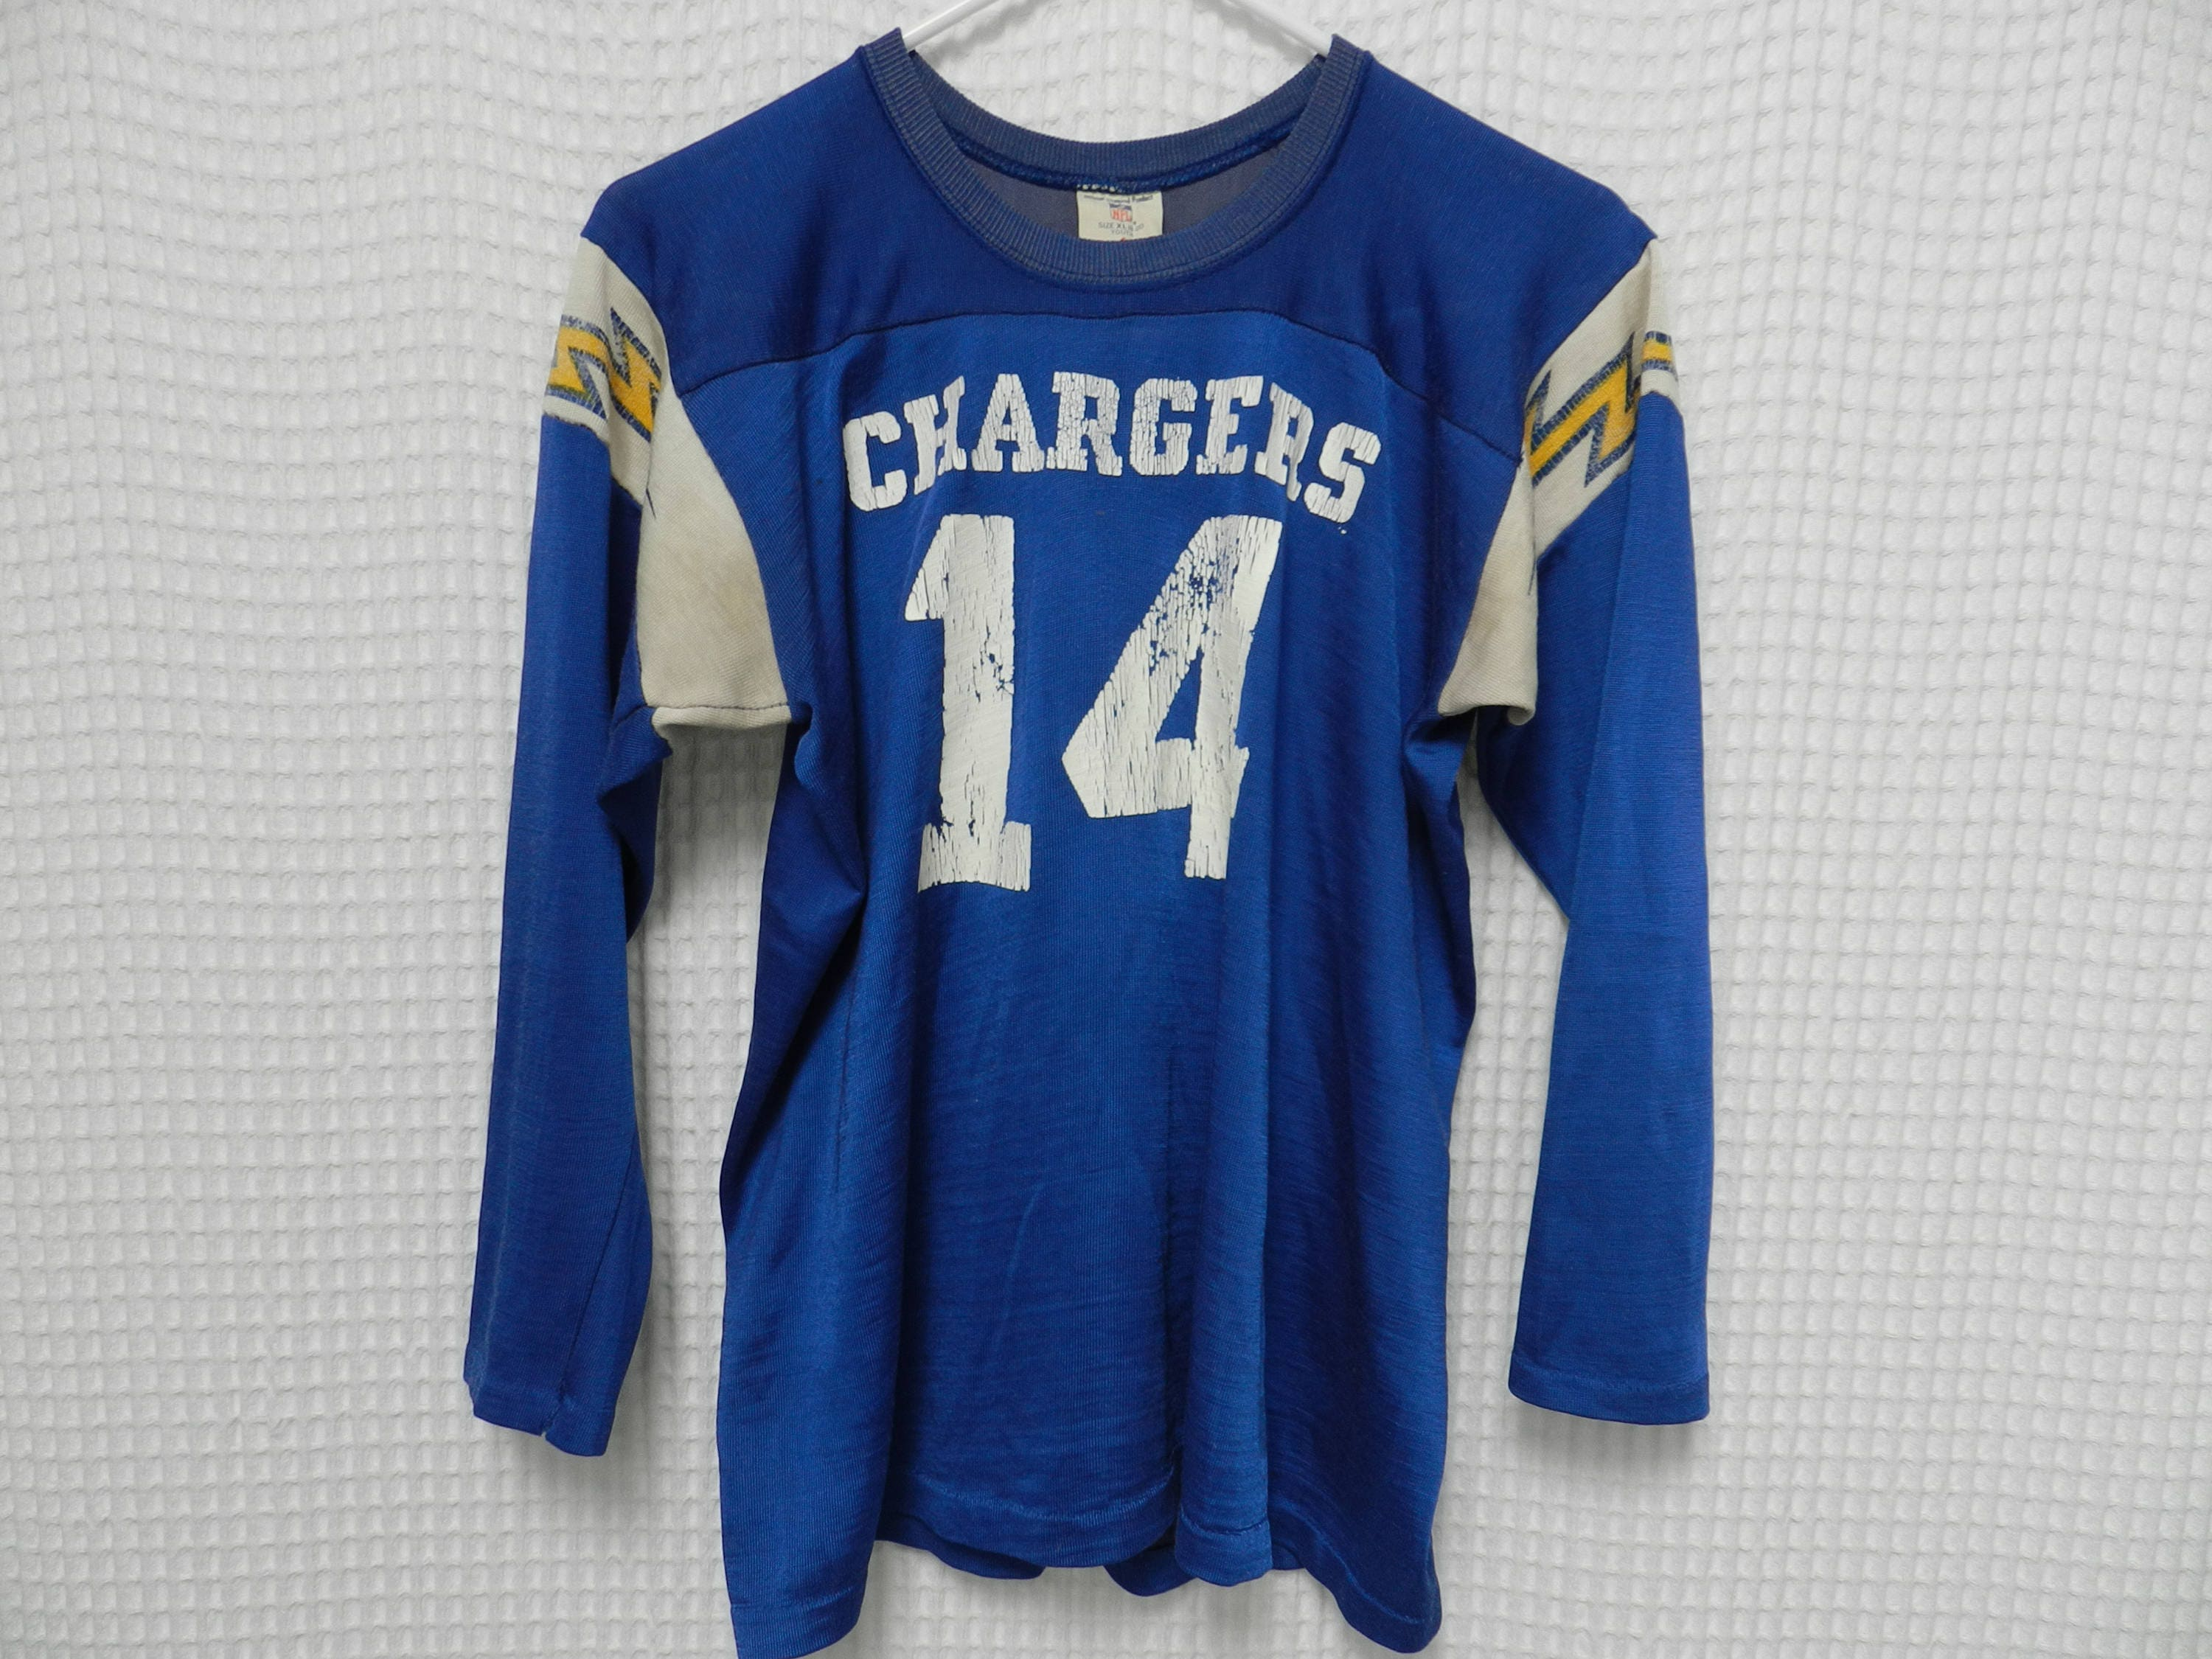 official photos 810d5 9317c vintage Dan Fouts Jersey 70s 80s San Diego Chargers NFL long sleeve  Rawlings USA Youth XL football jersey retro Los Angeles #14 raglan Rare